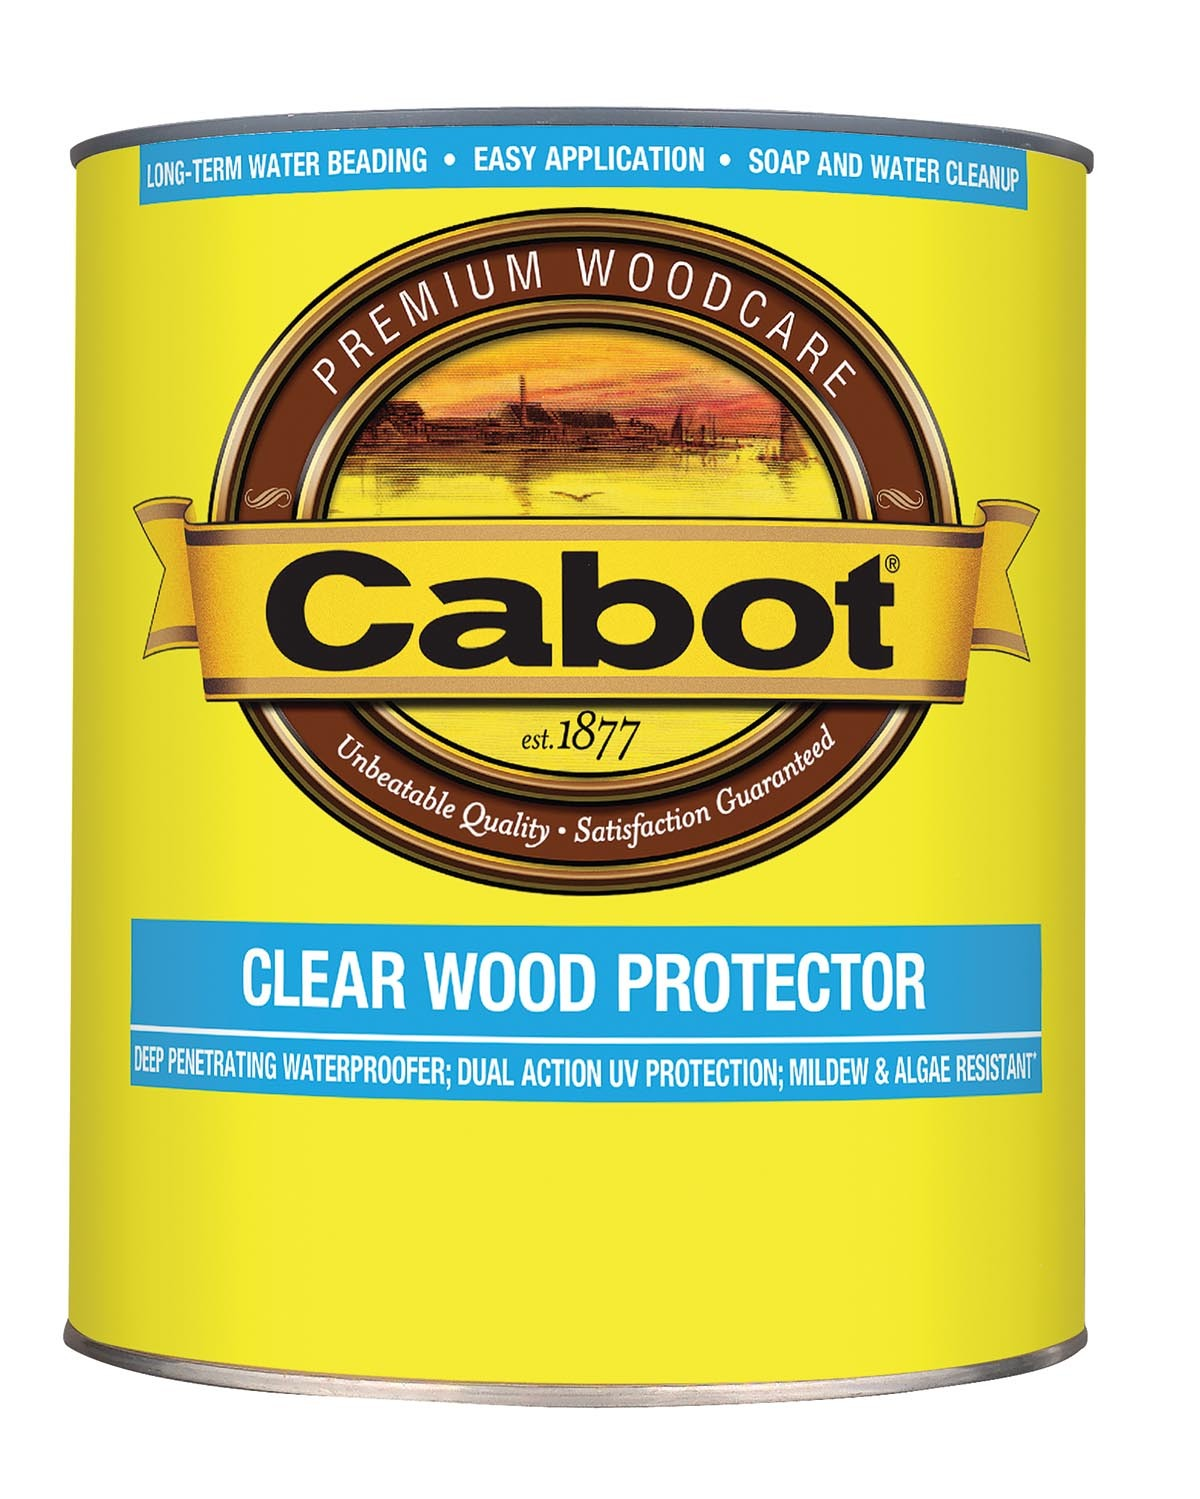 Cabot Stains Solid Color Acrylic Siding Stain